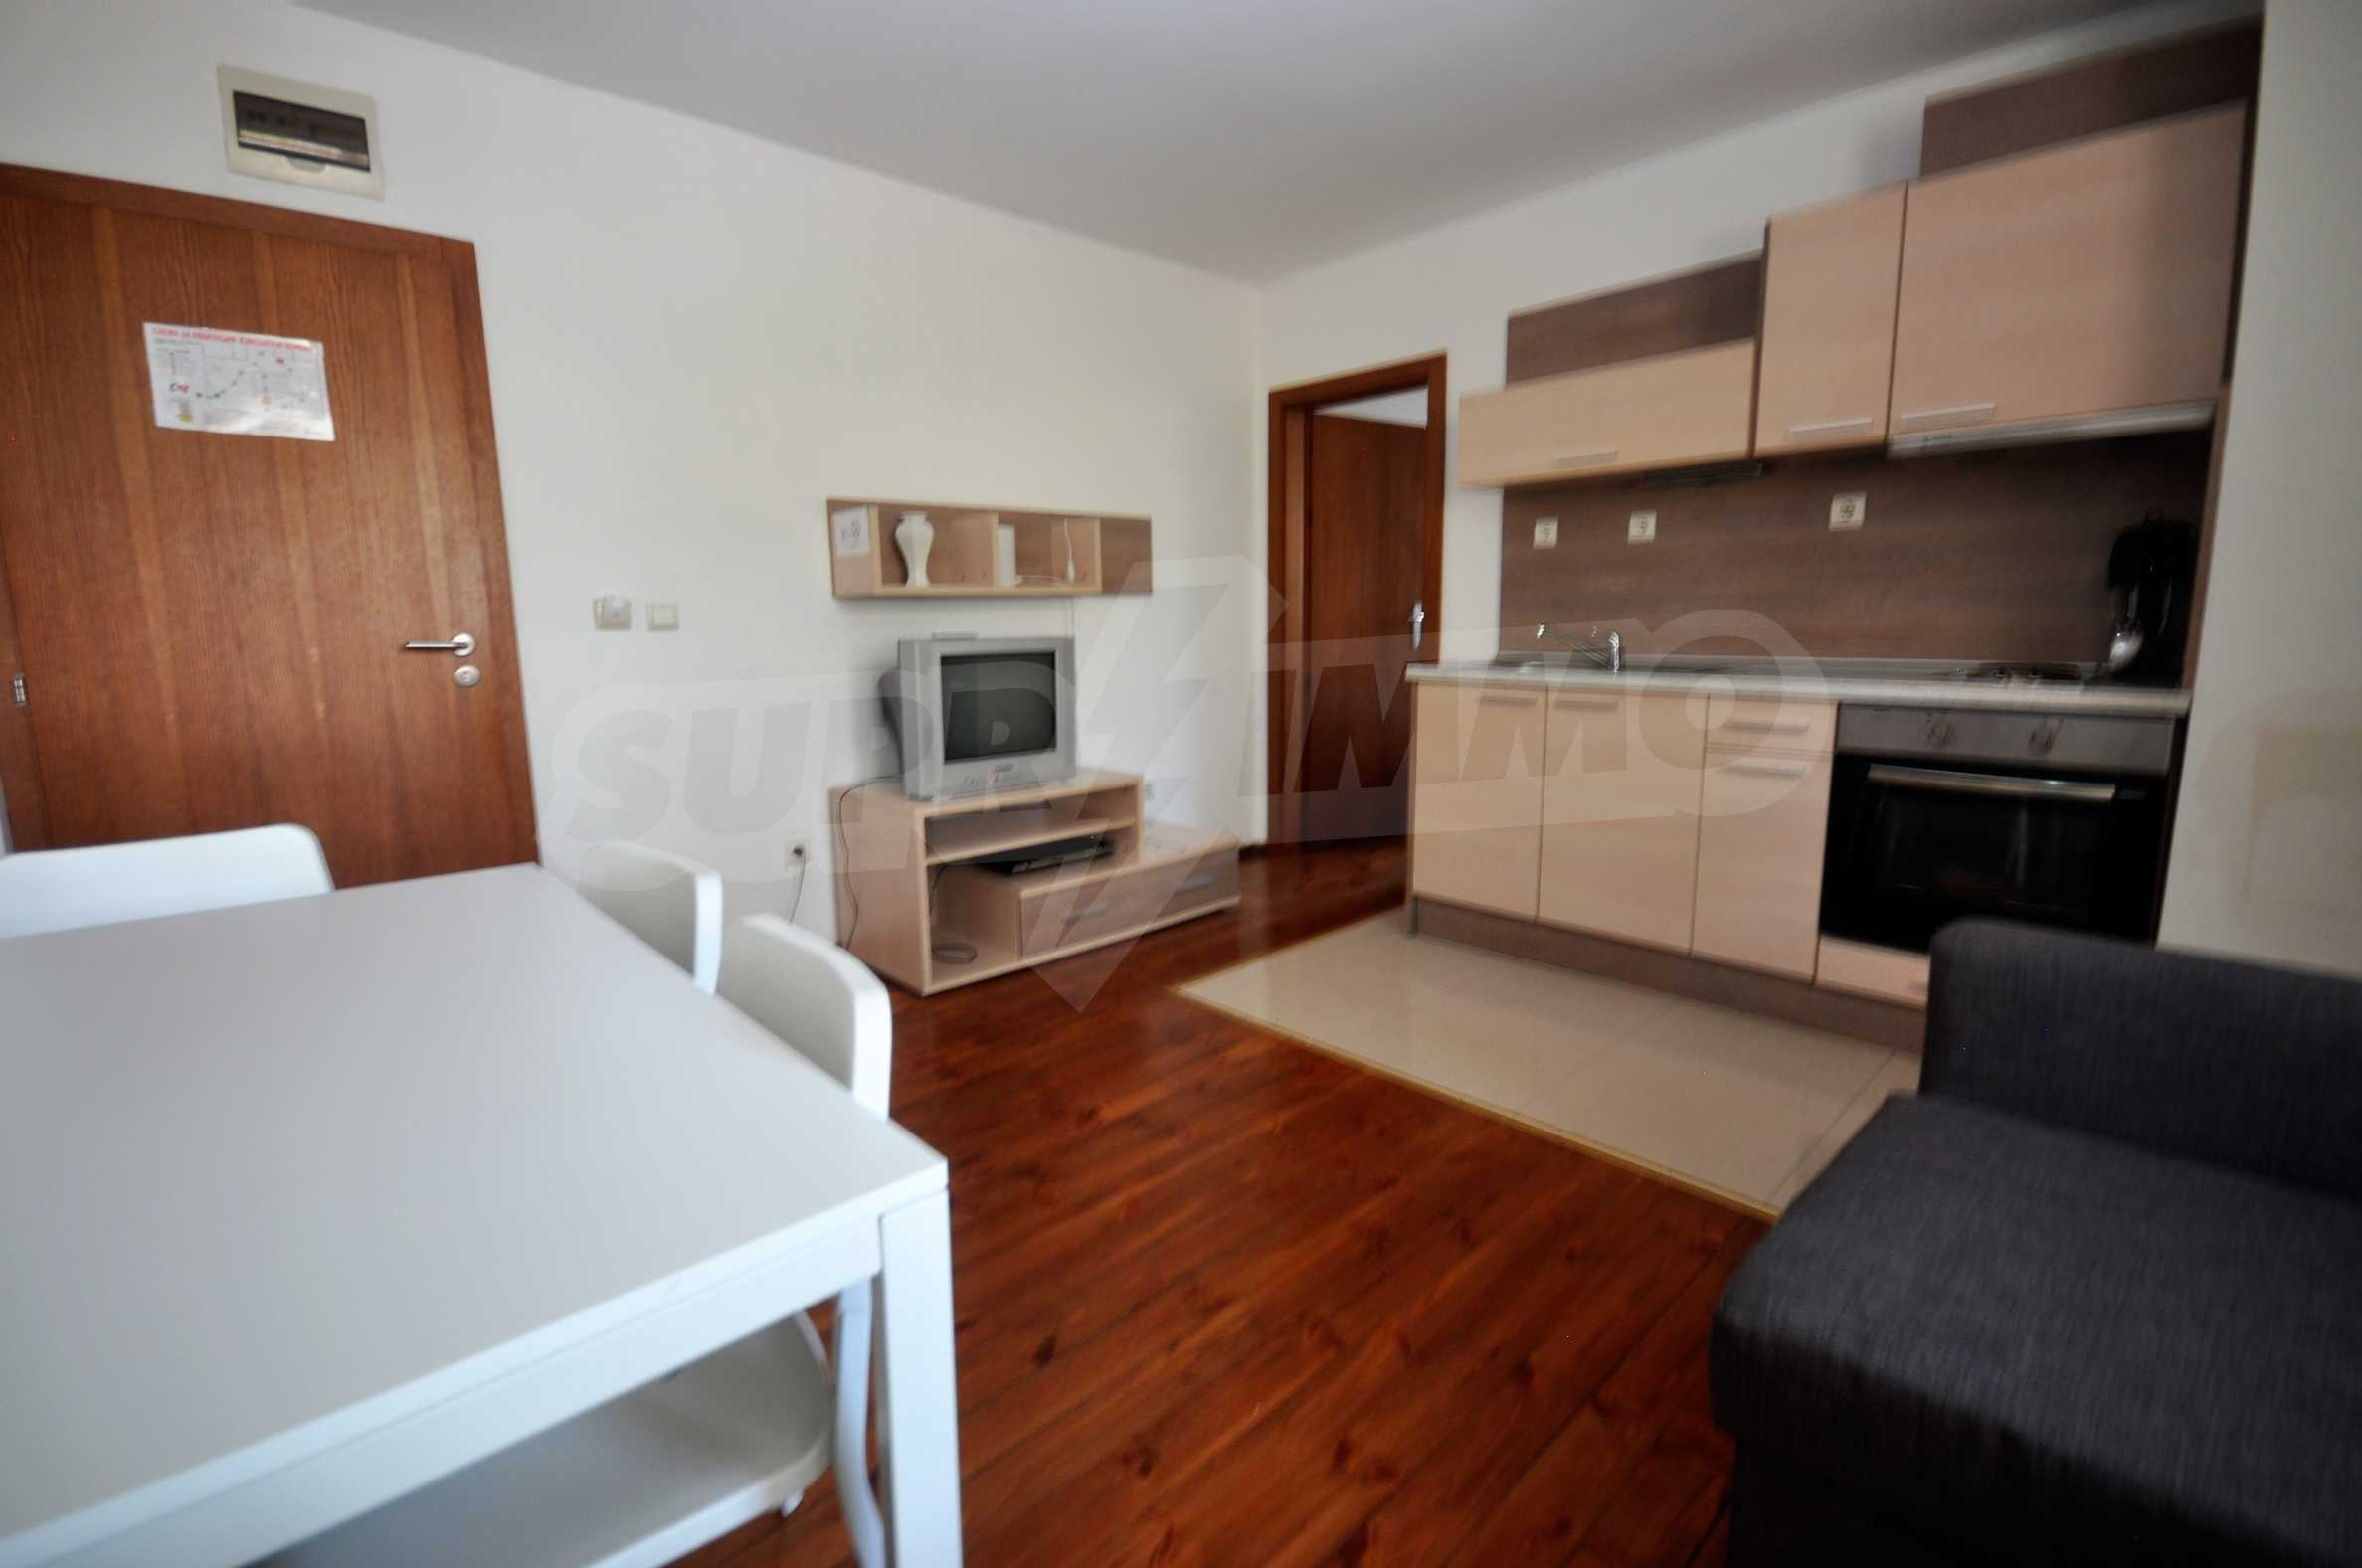 One bedroom apartment meters from the lift in the town of Bansko 3